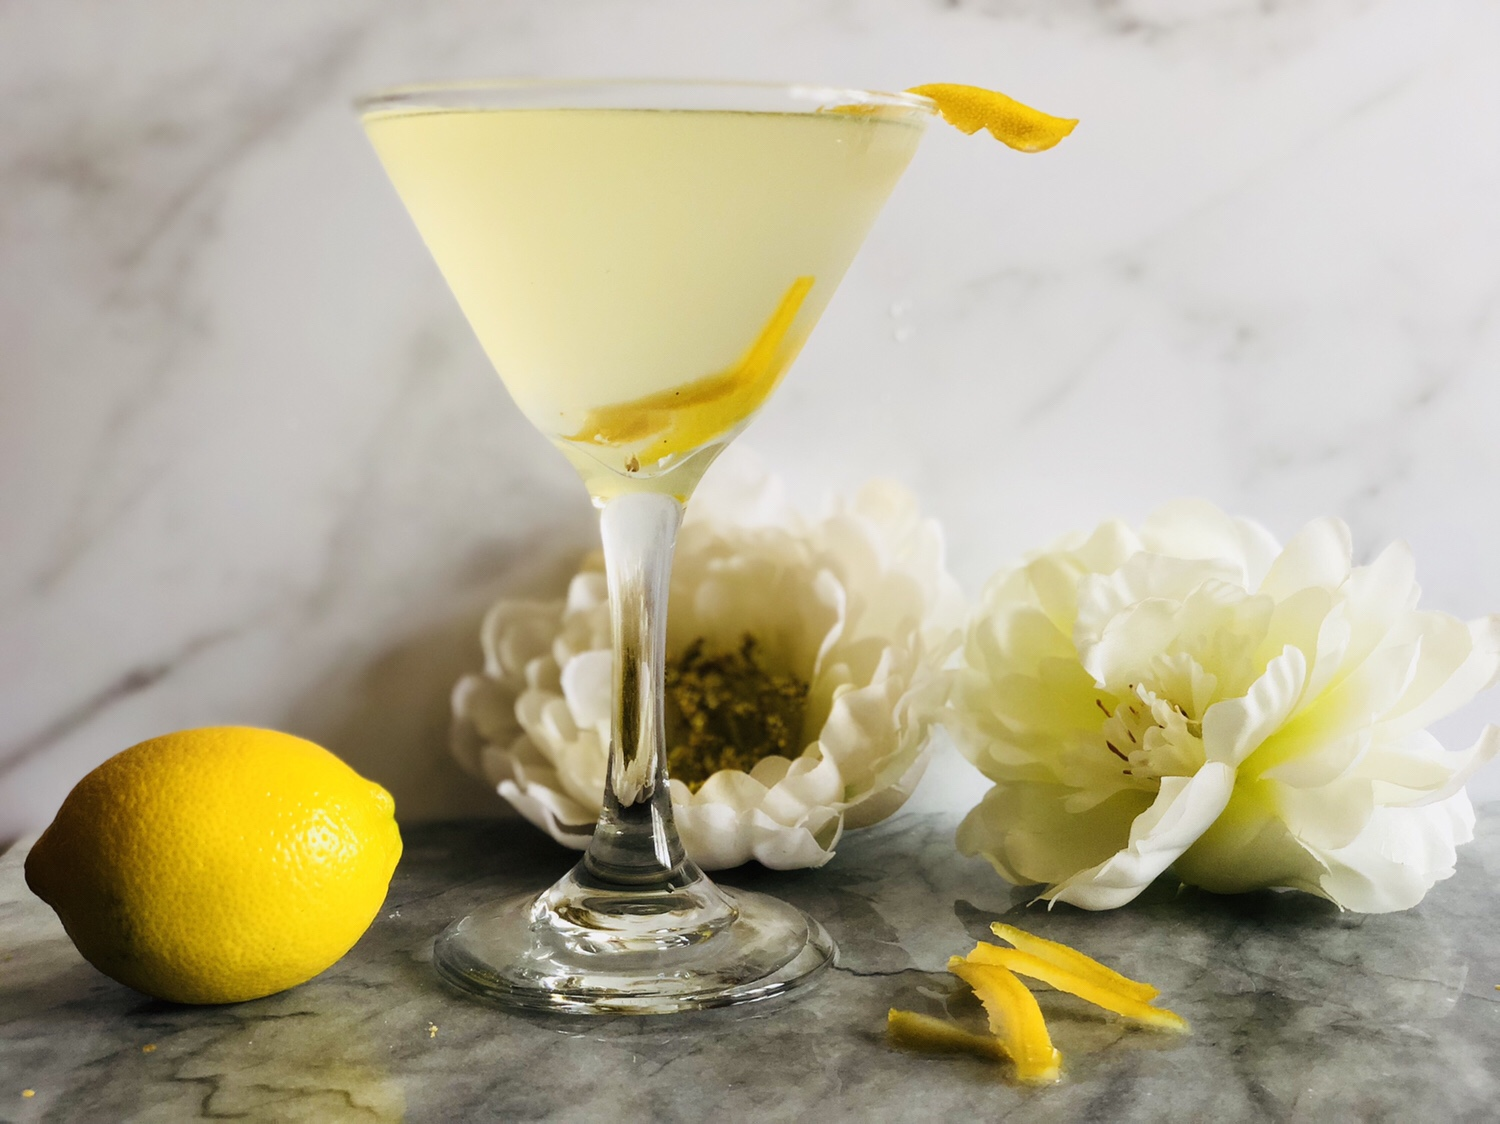 Lemon Eldflower Martini inspired by Meghan Markle and Prince Harry